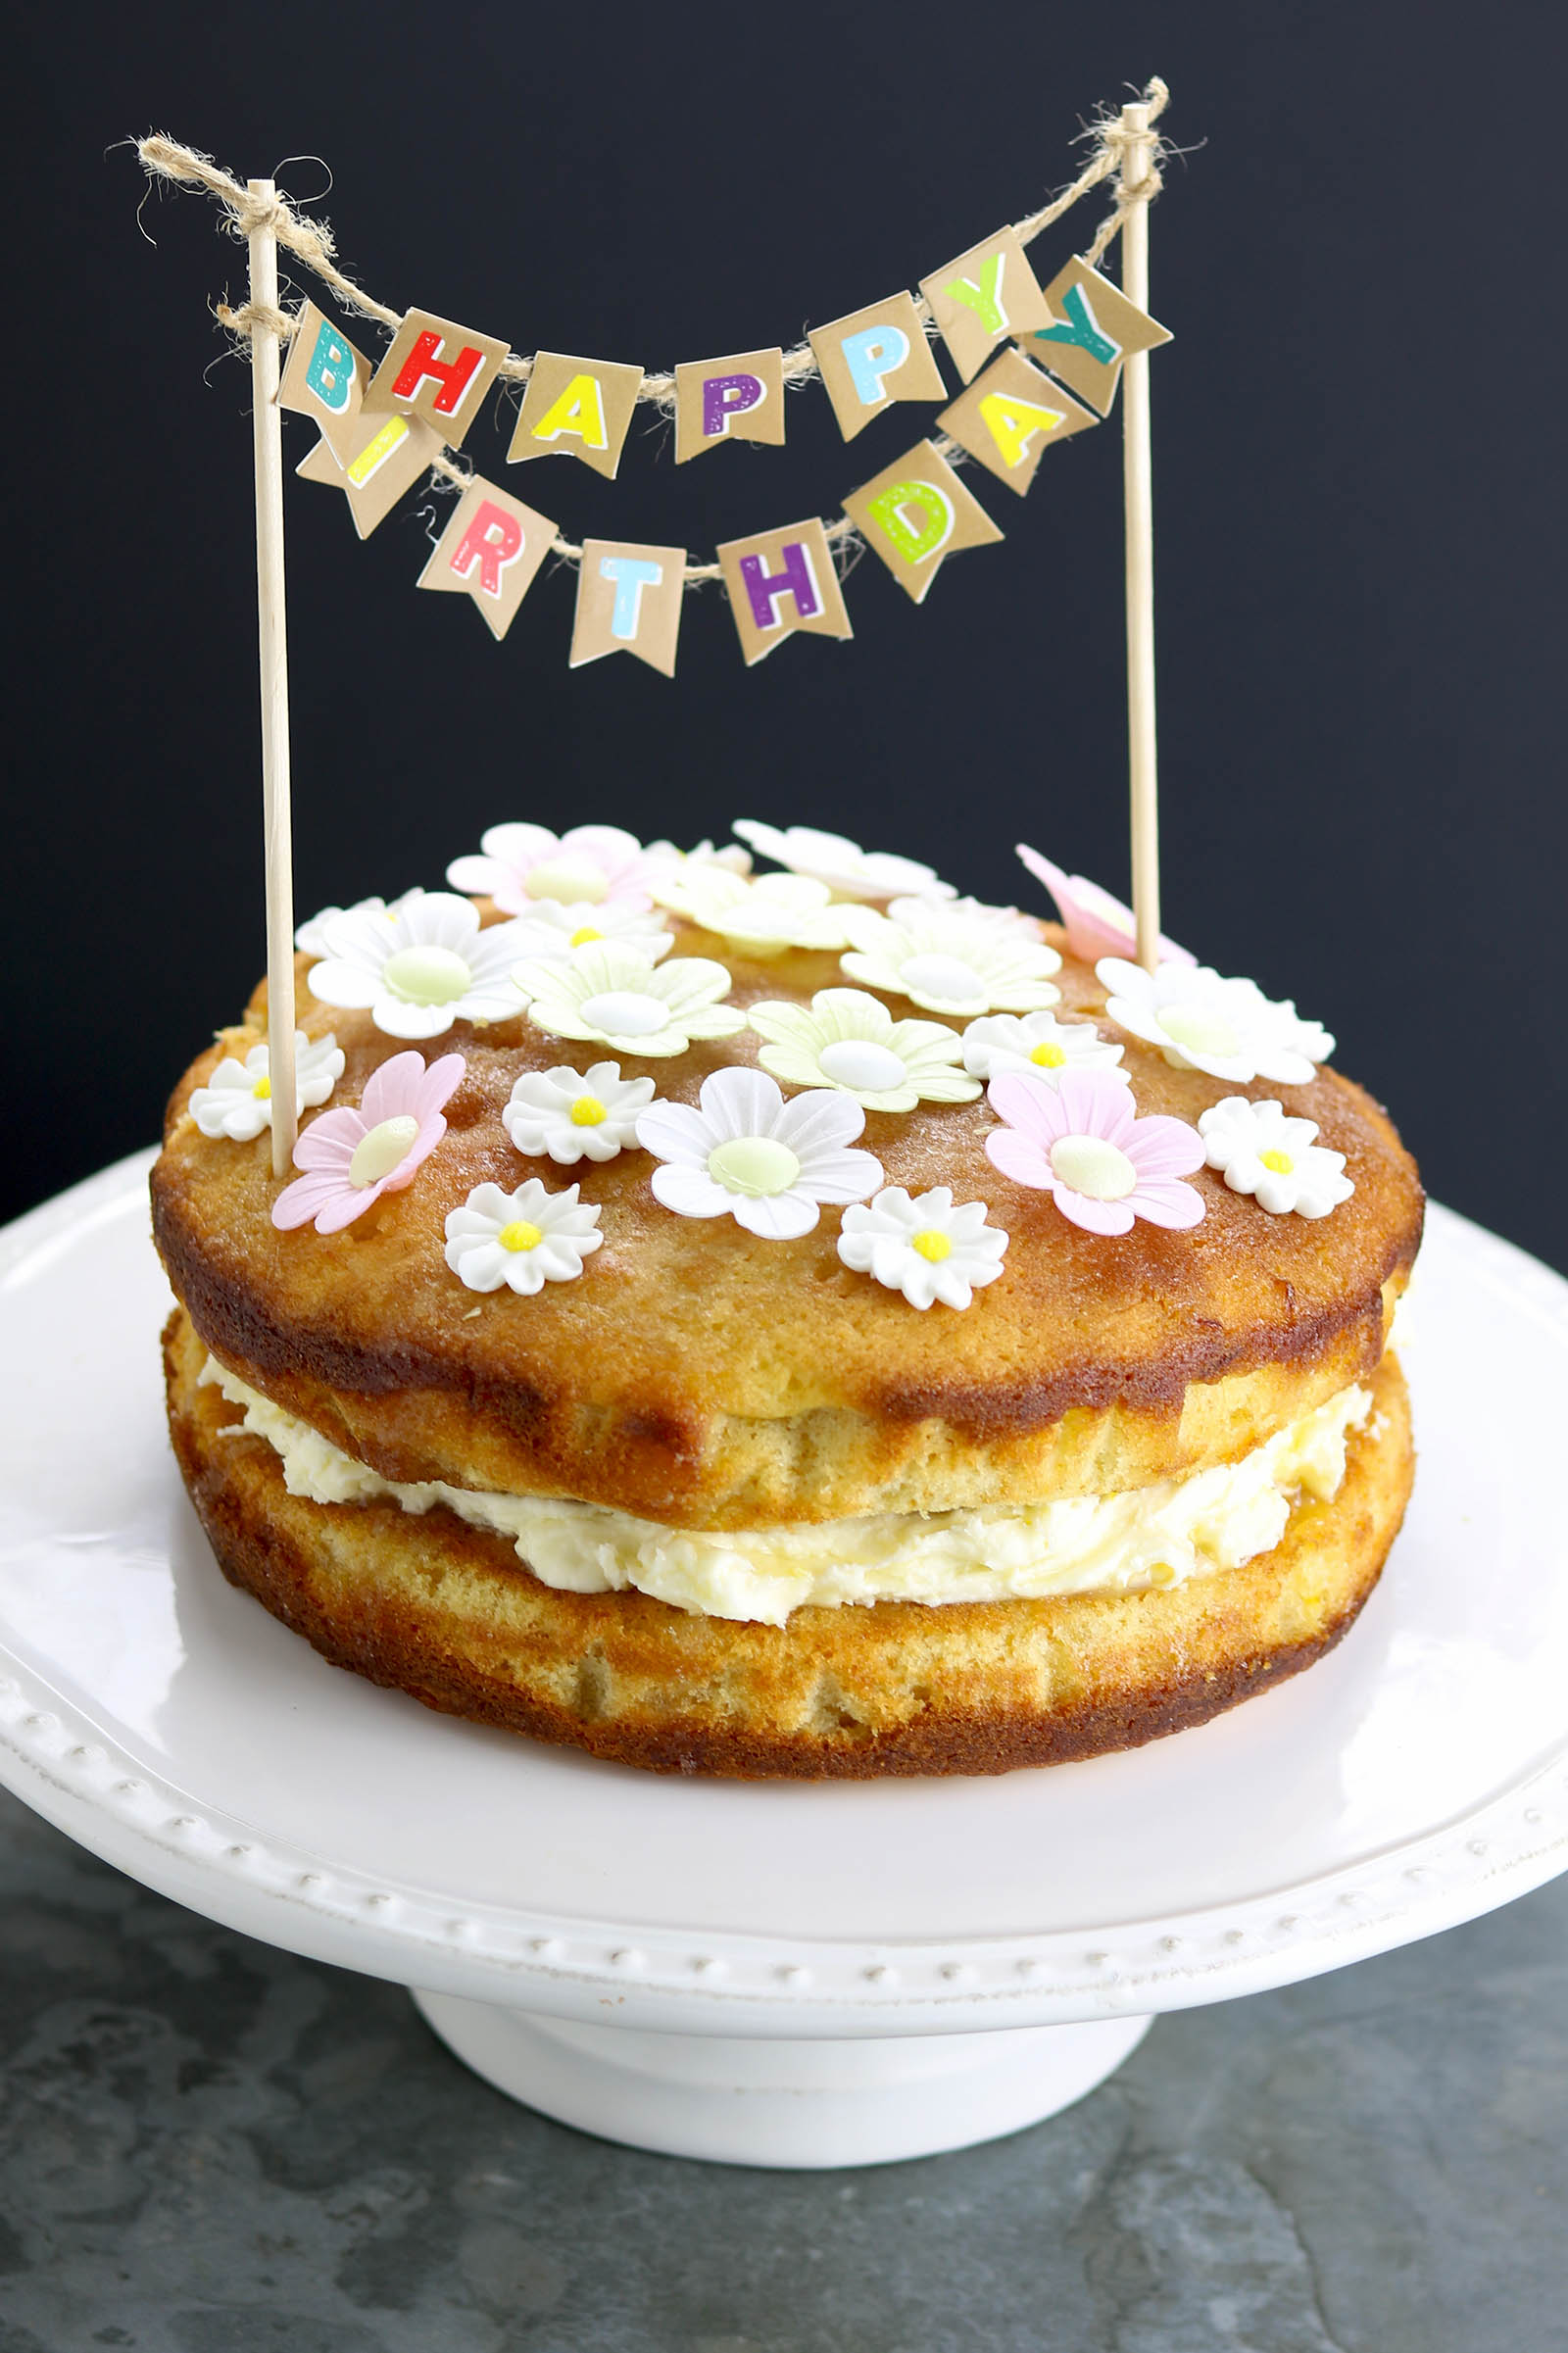 Lemon Drizzle Birthday Cake - The Last Food Blog